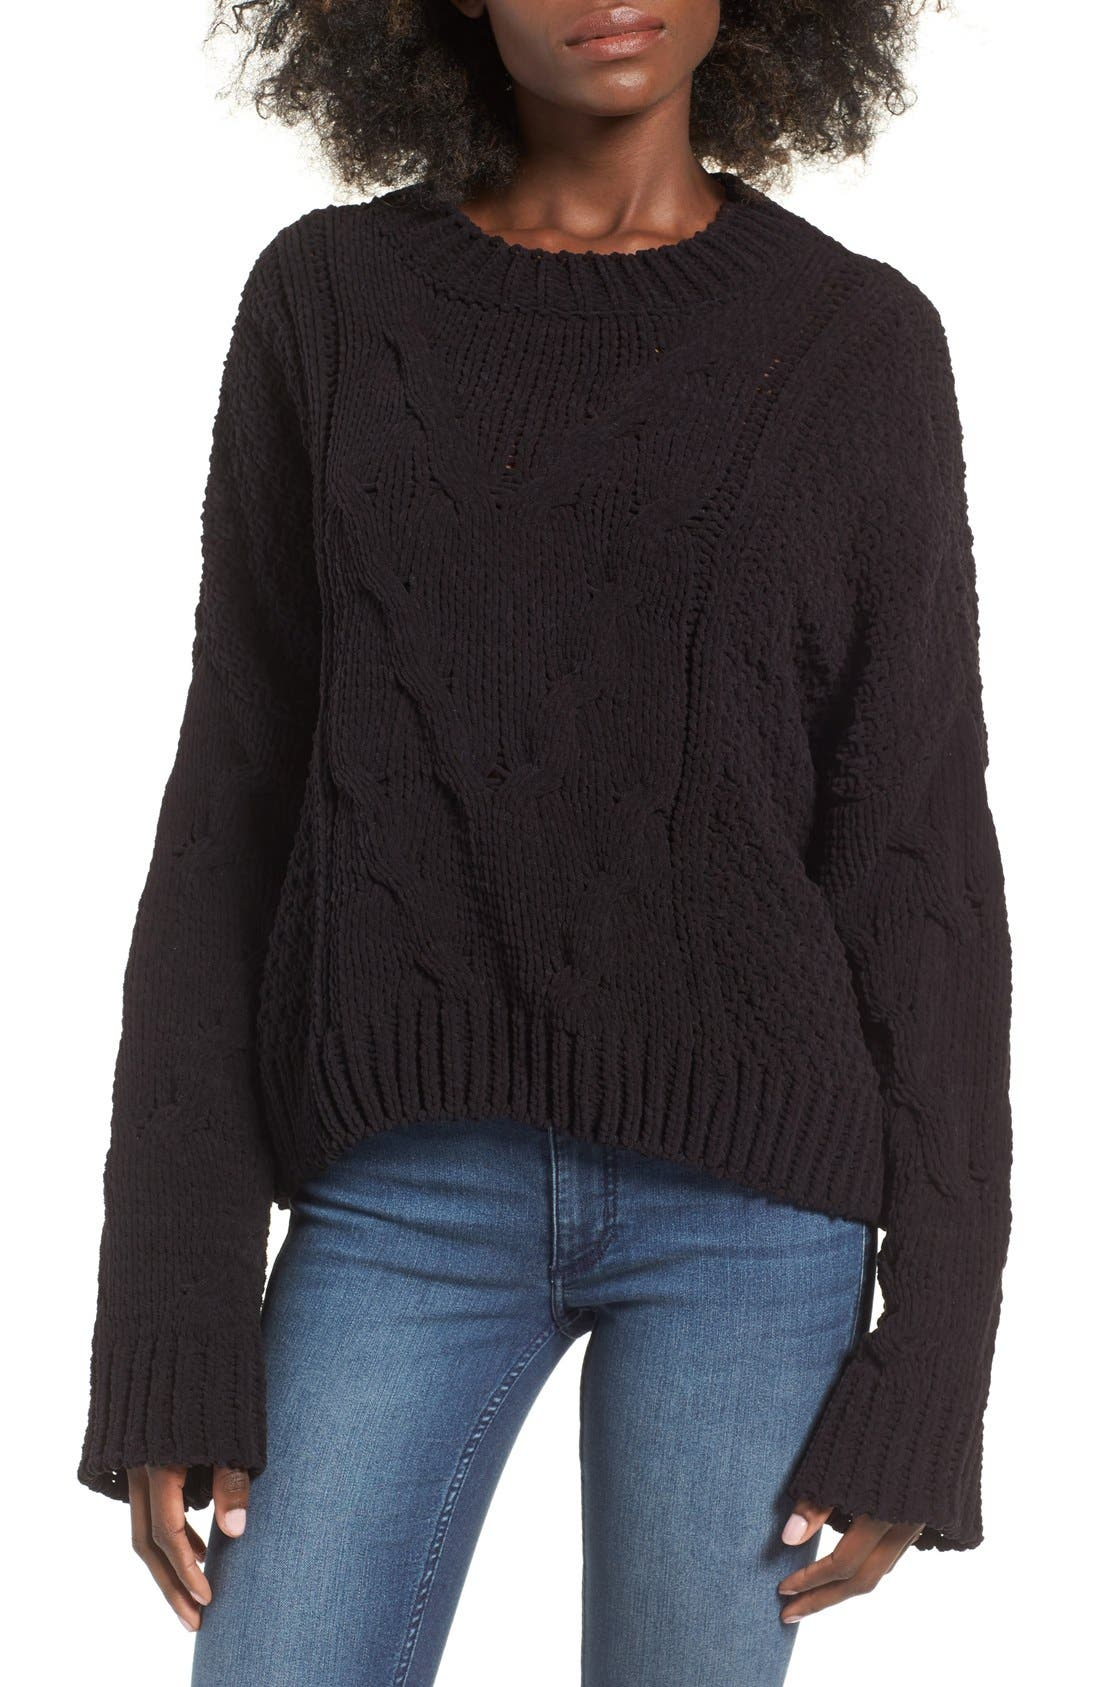 Alternate Image 1 Selected - J.O.A. Boxy Cable Knit Sweater